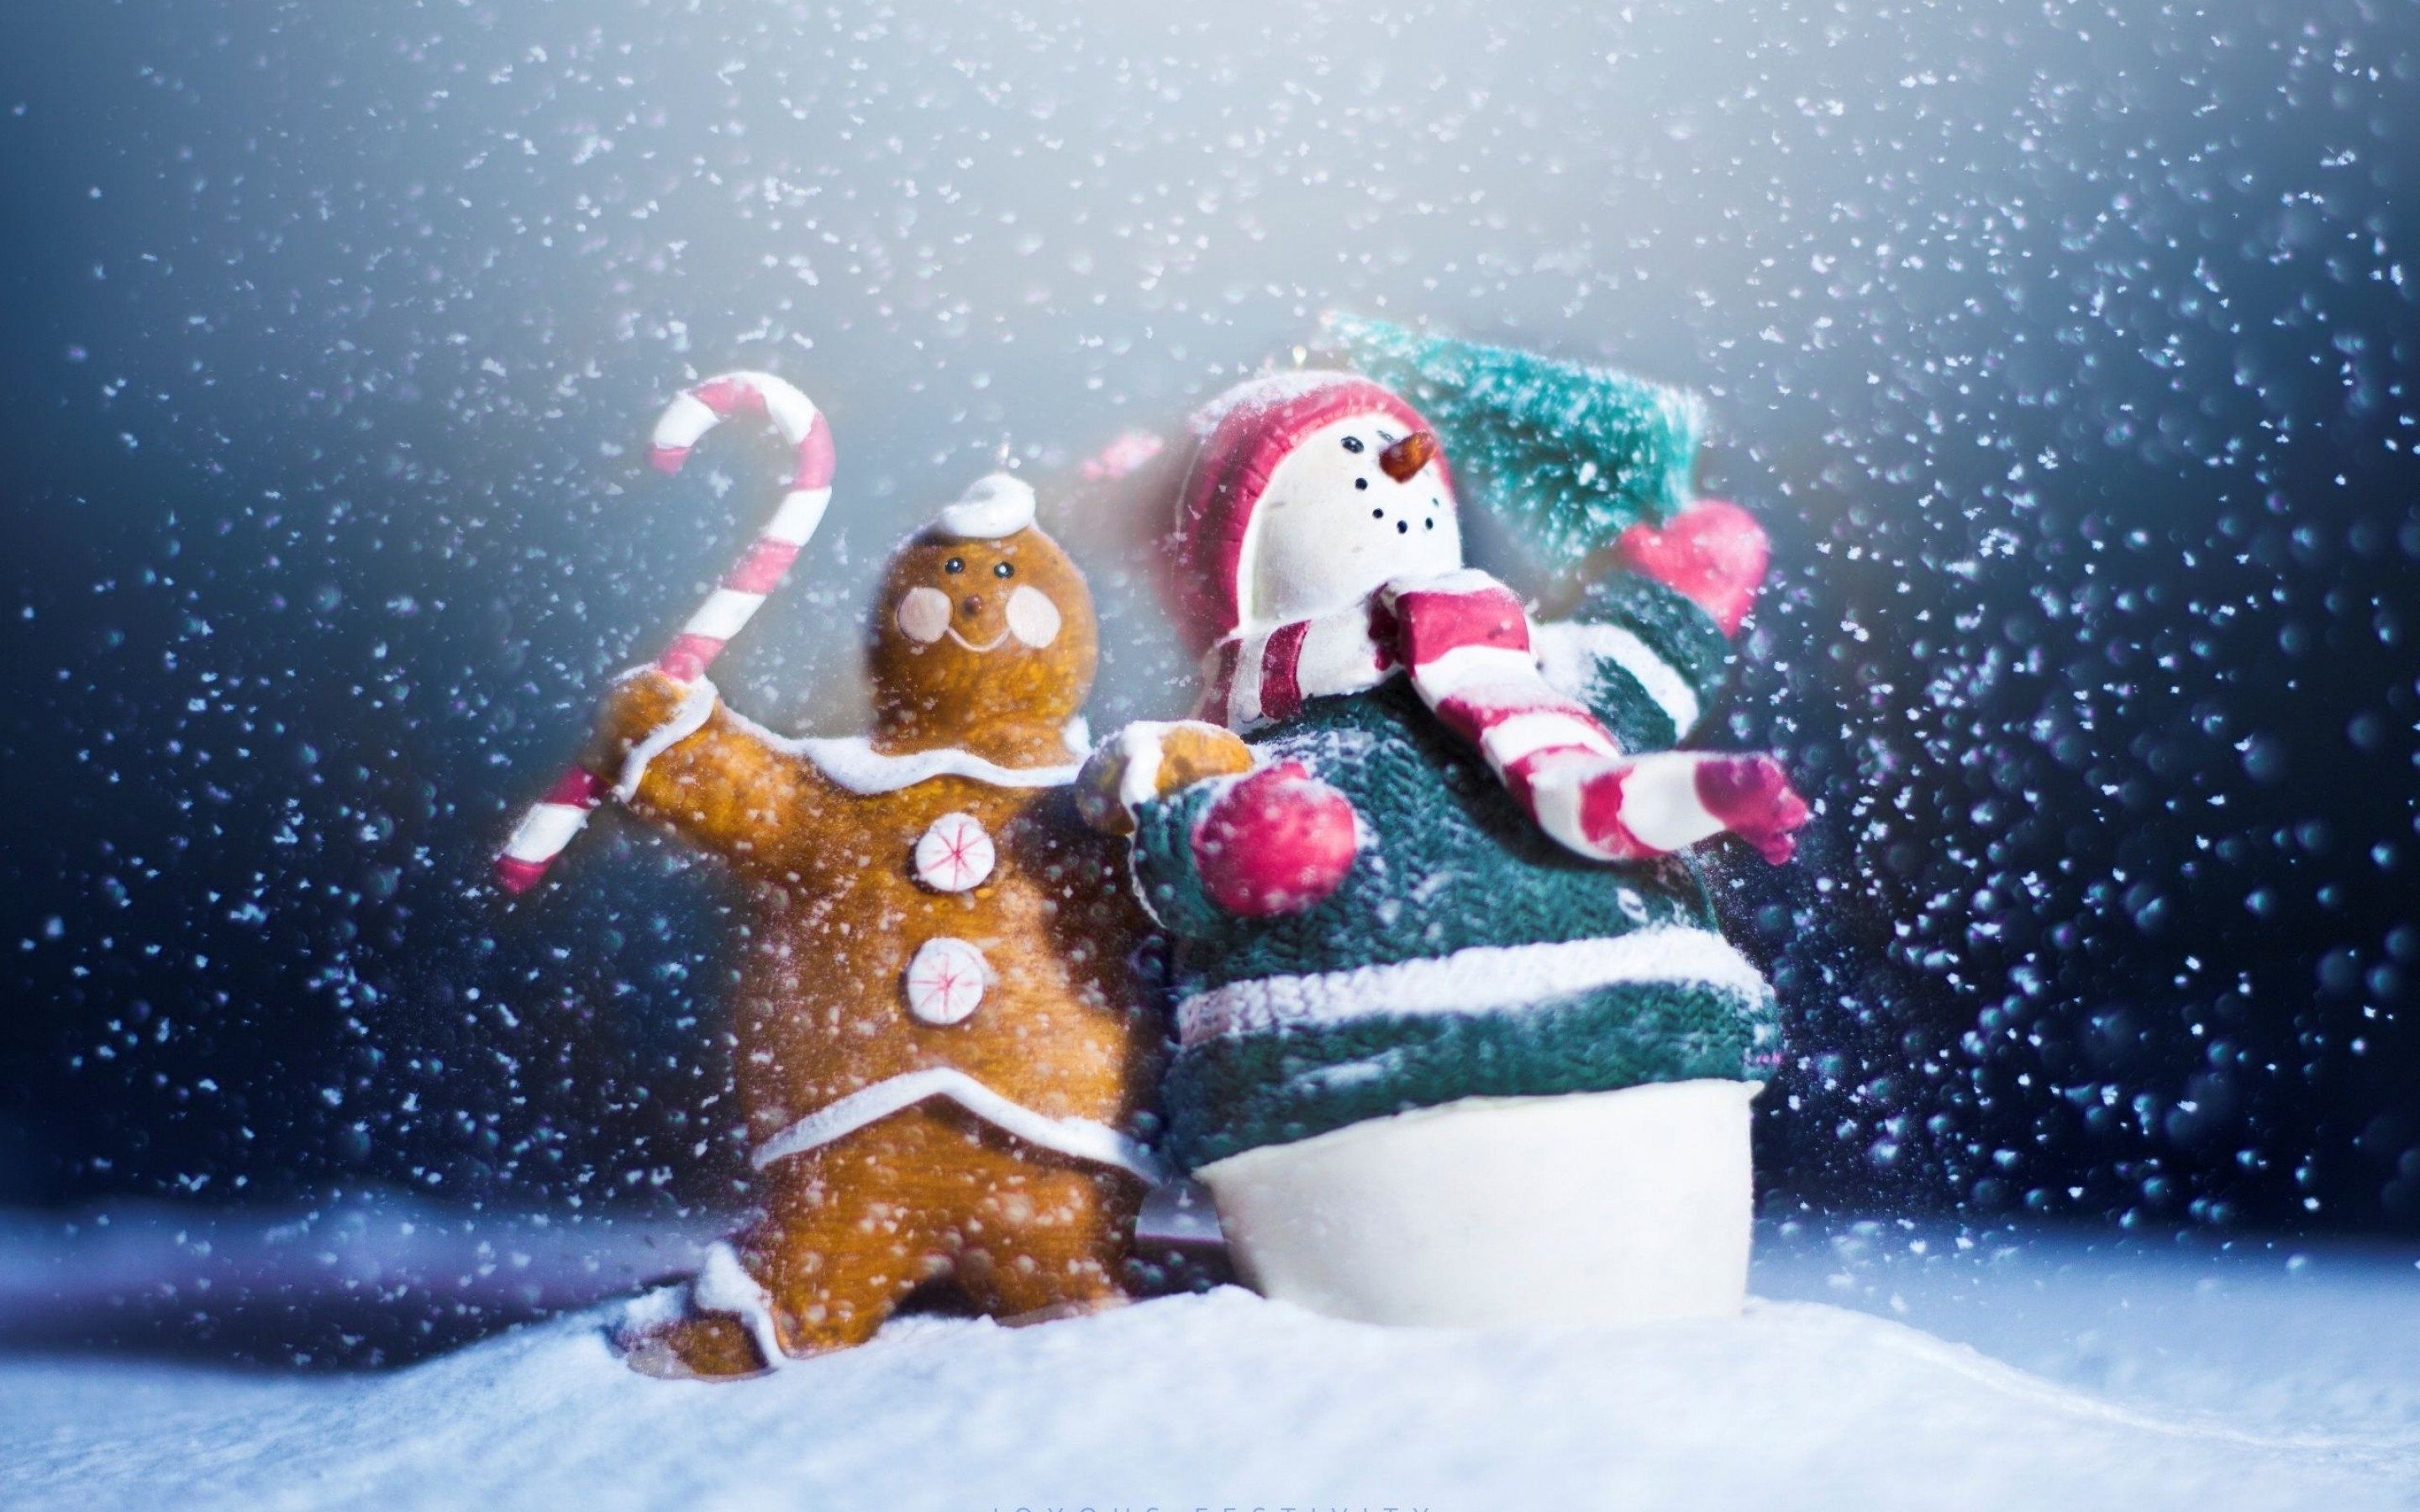 HD Christmas wallpaper ·① Download free cool full HD wallpapers for desktop computers and ...